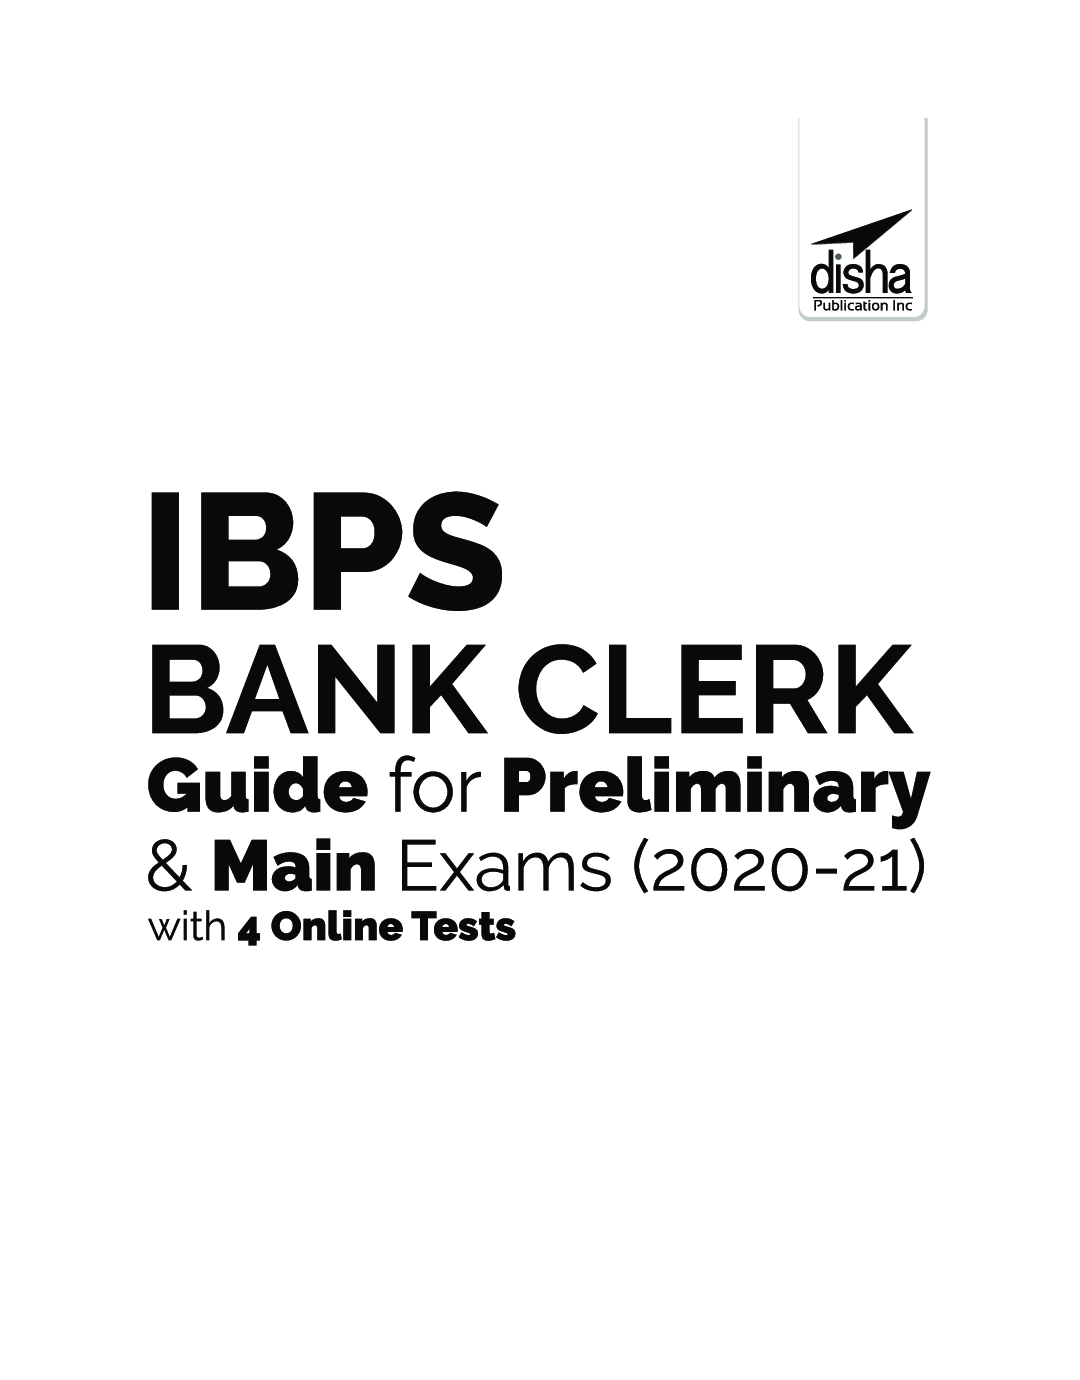 IBPS Bank Clerk Guide For Preliminary & Main Exams 2020-21 With 4 Online Tests (10th Edition) - Page 2